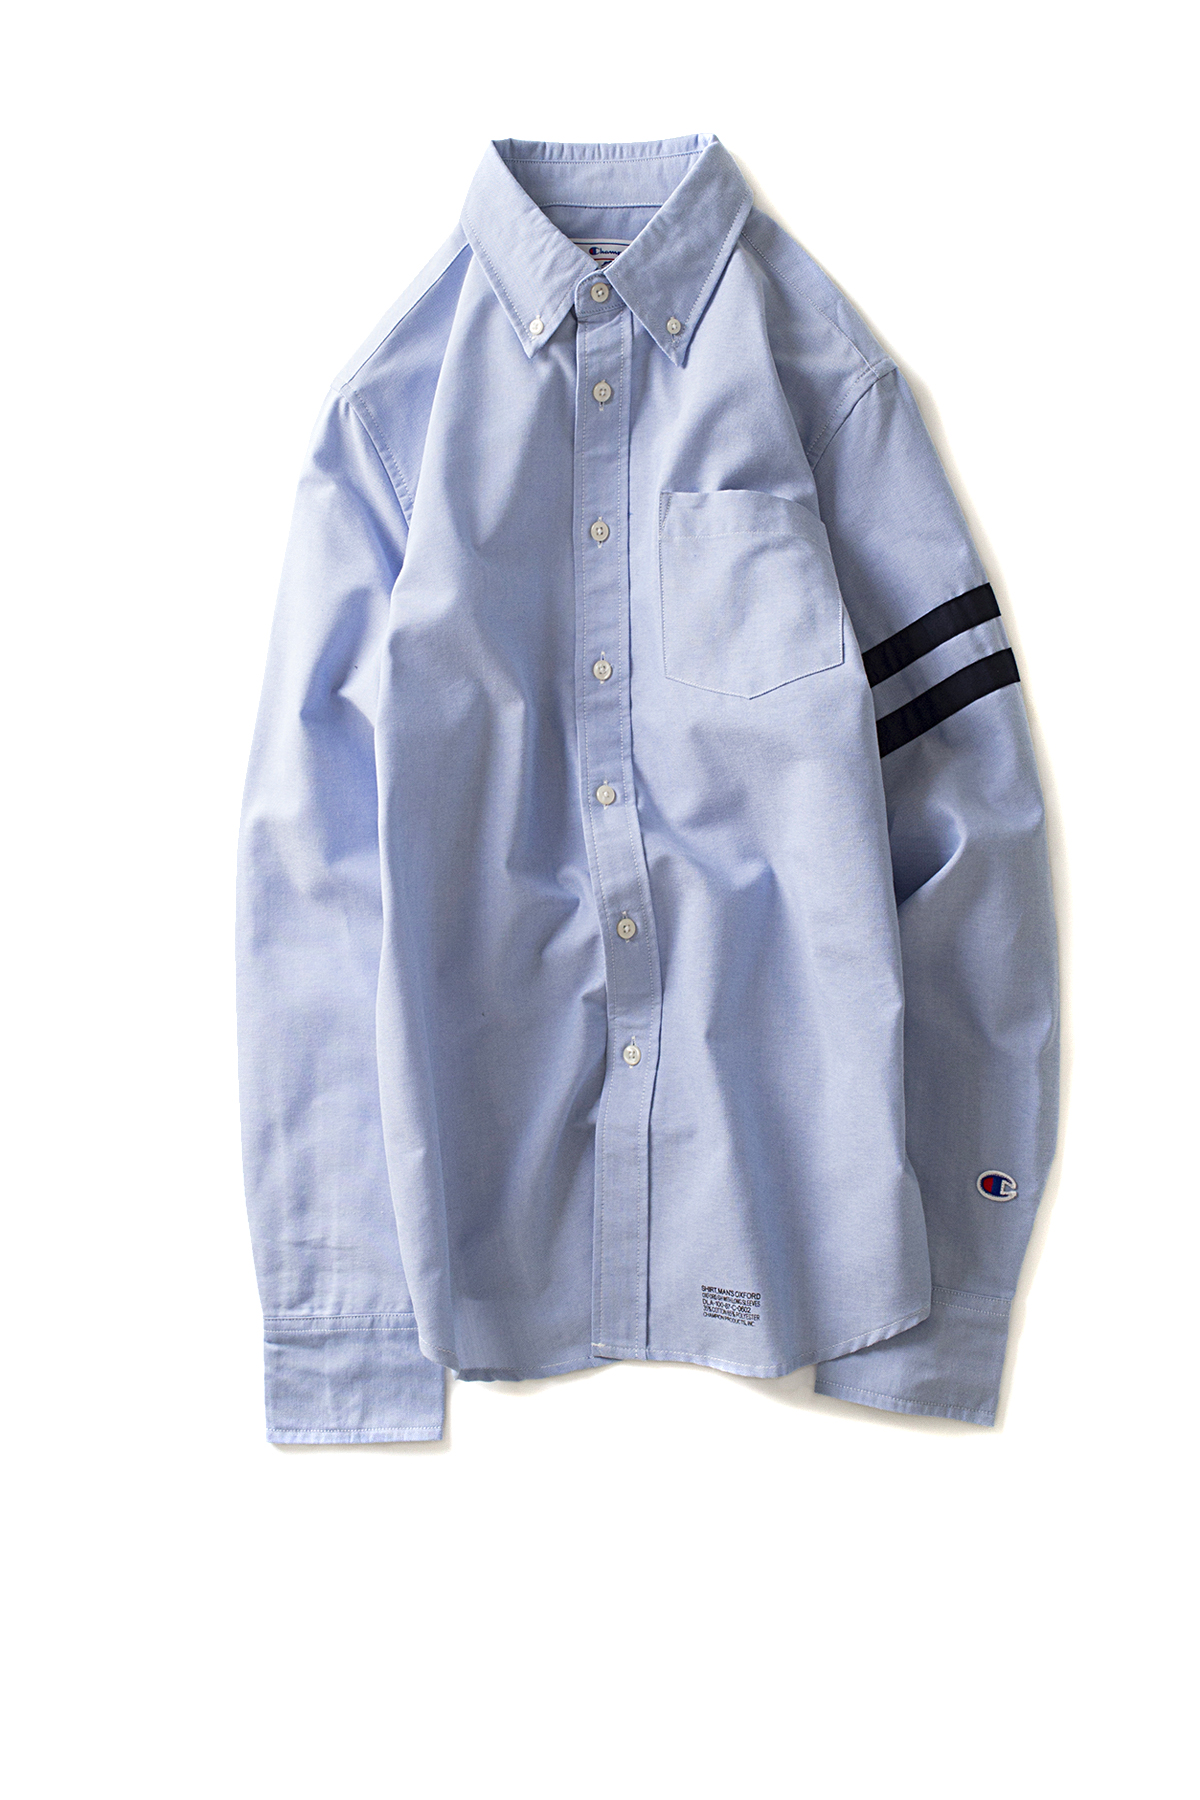 Champion : Campus Long Sleeve Button Down Shirt (Blue)